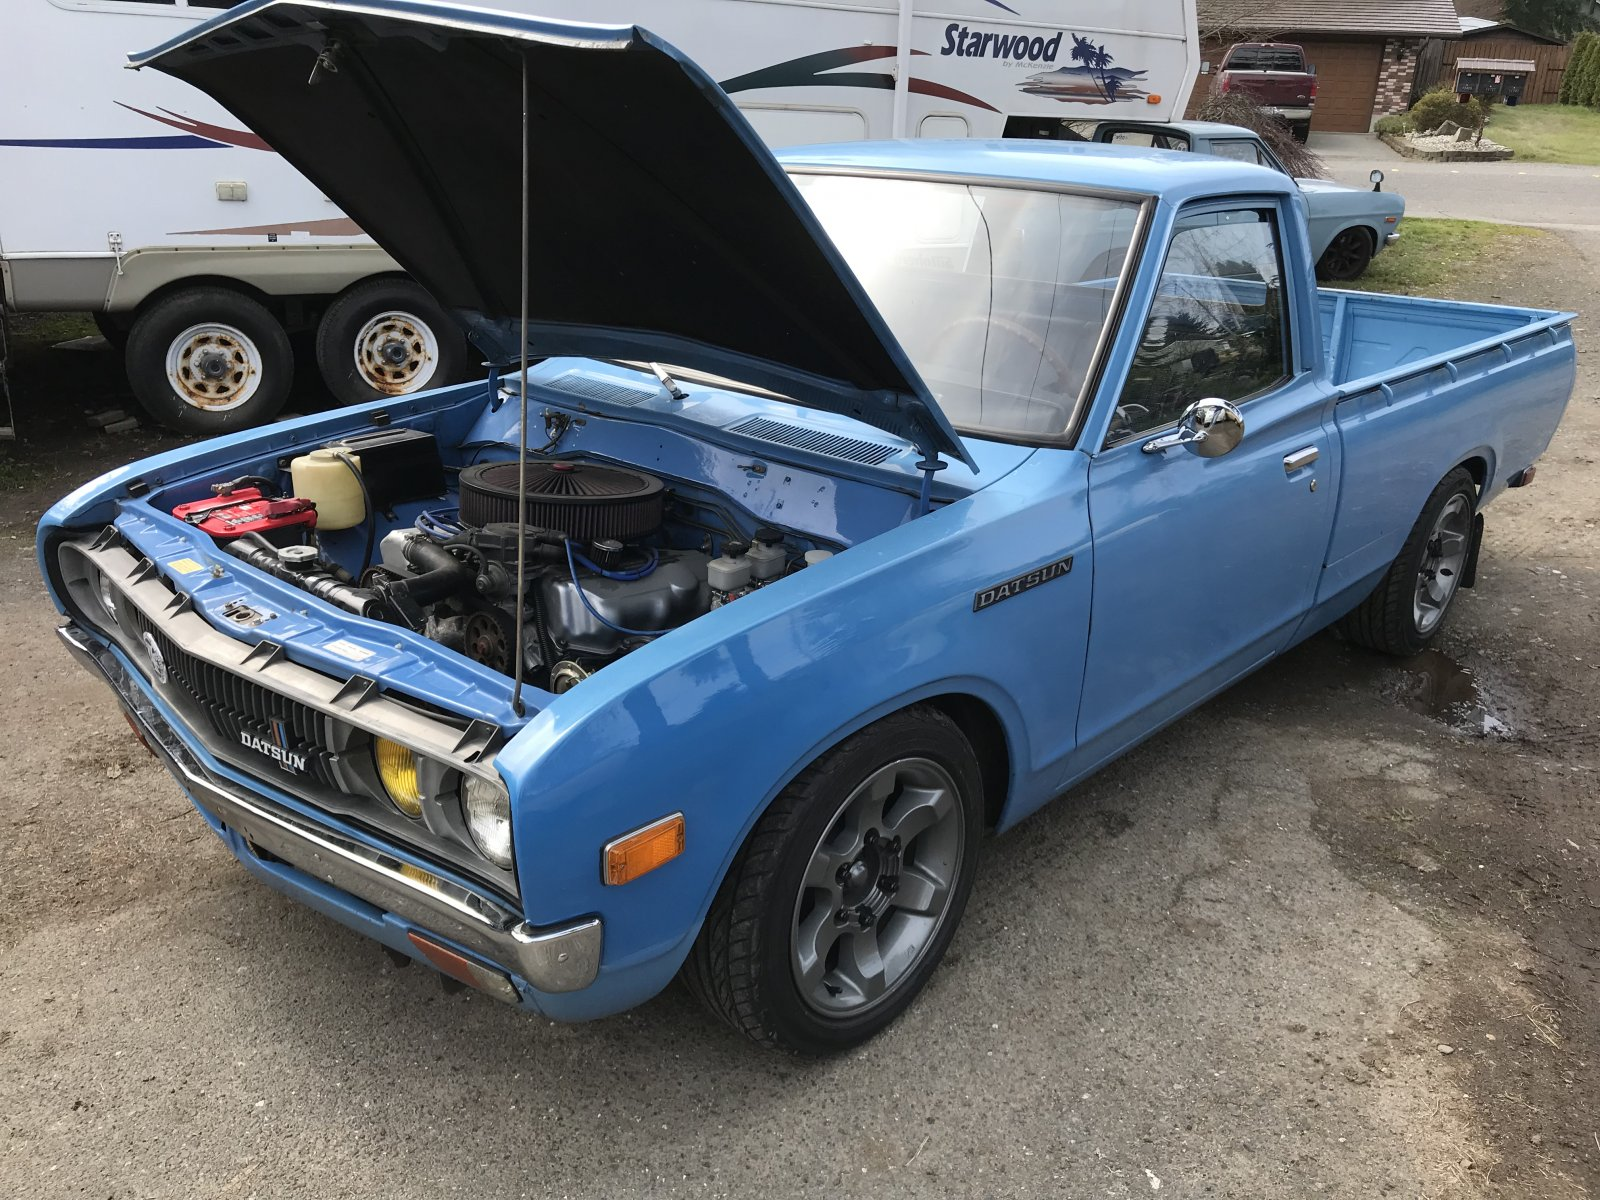 03312018 datsun sighting.JPG